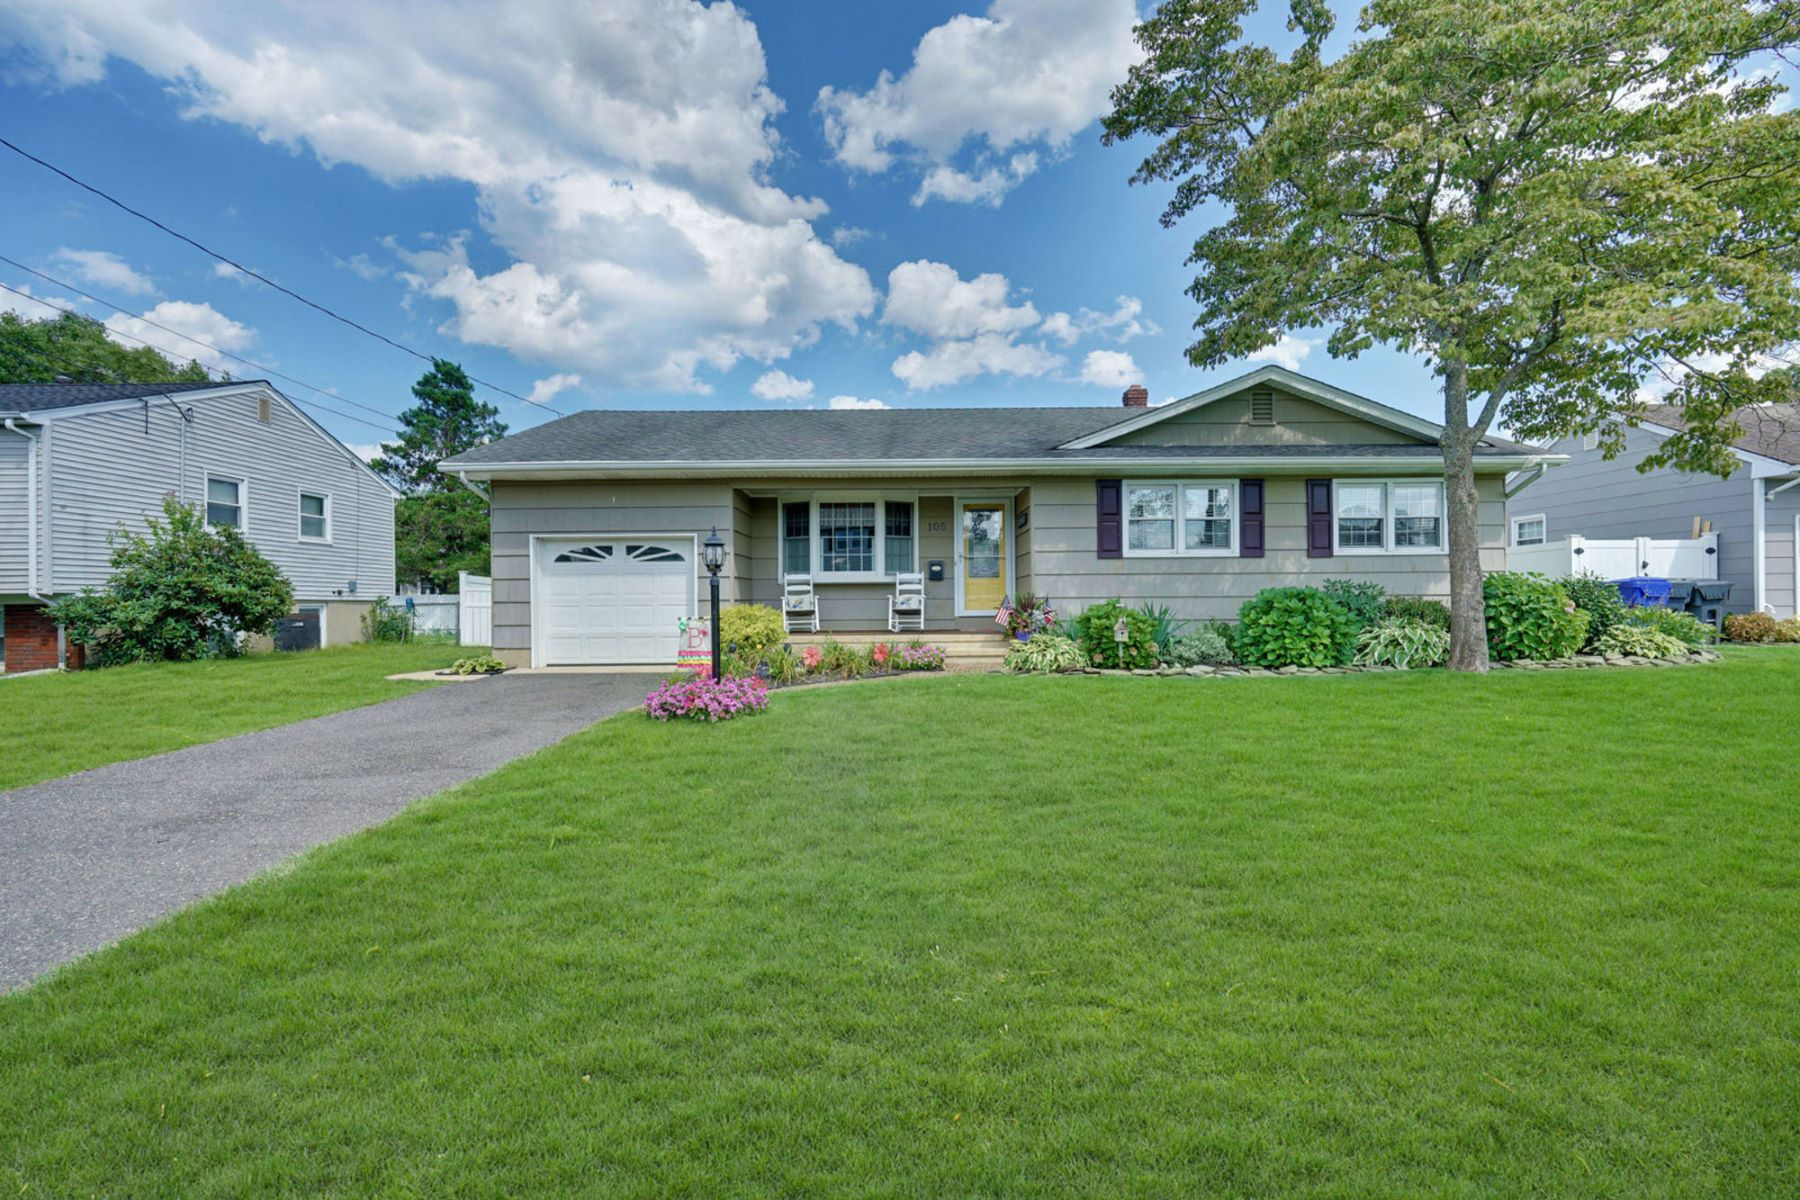 Single Family Homes for Active at Beautiful Ranch Located On Oversized Lot 105 Leone Drive Brick, New Jersey 08724 United States